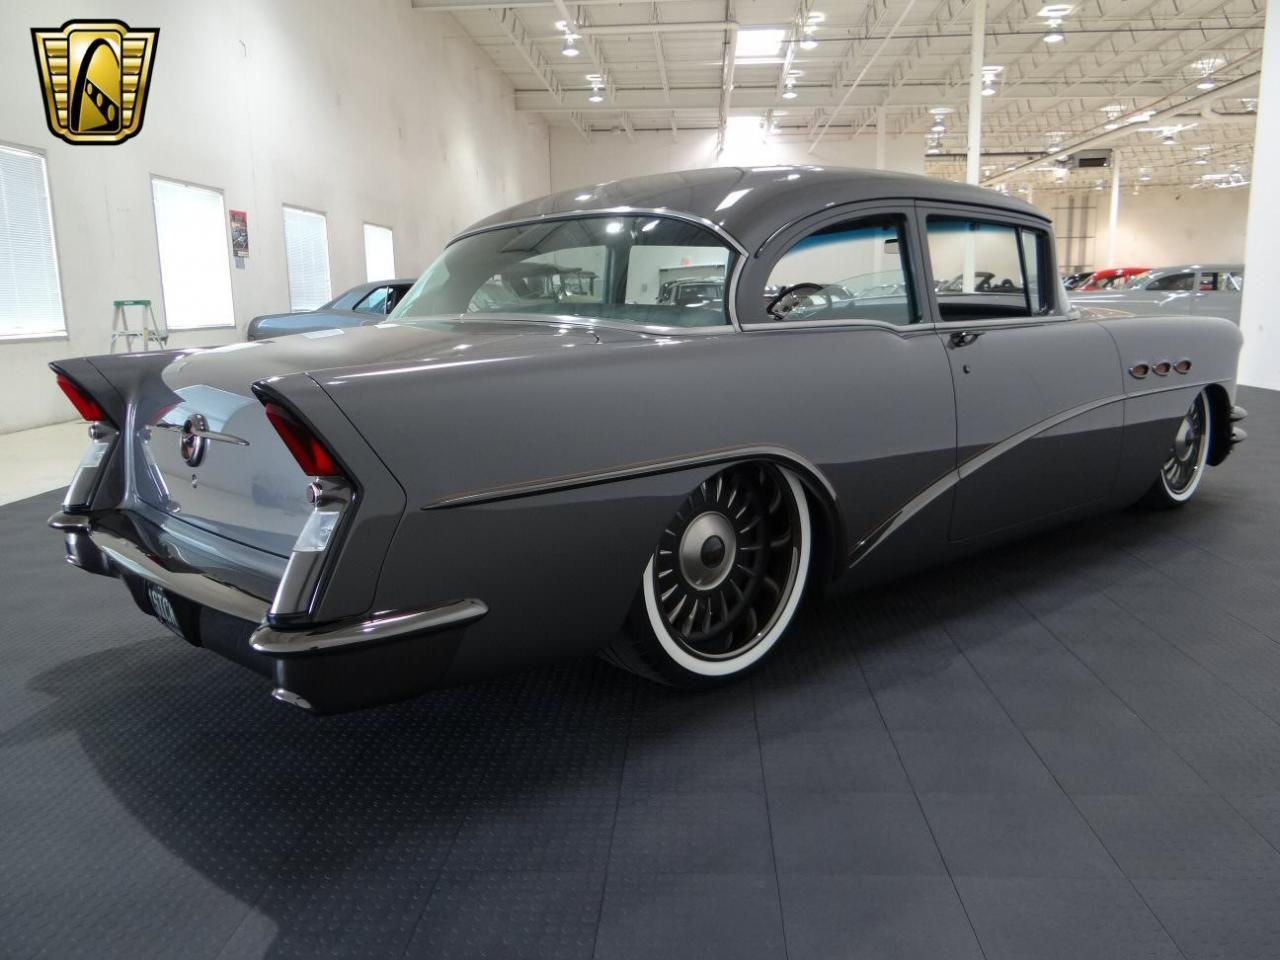 1956 Buick Special 413 CID Nailhead V8 Automatic For Sale